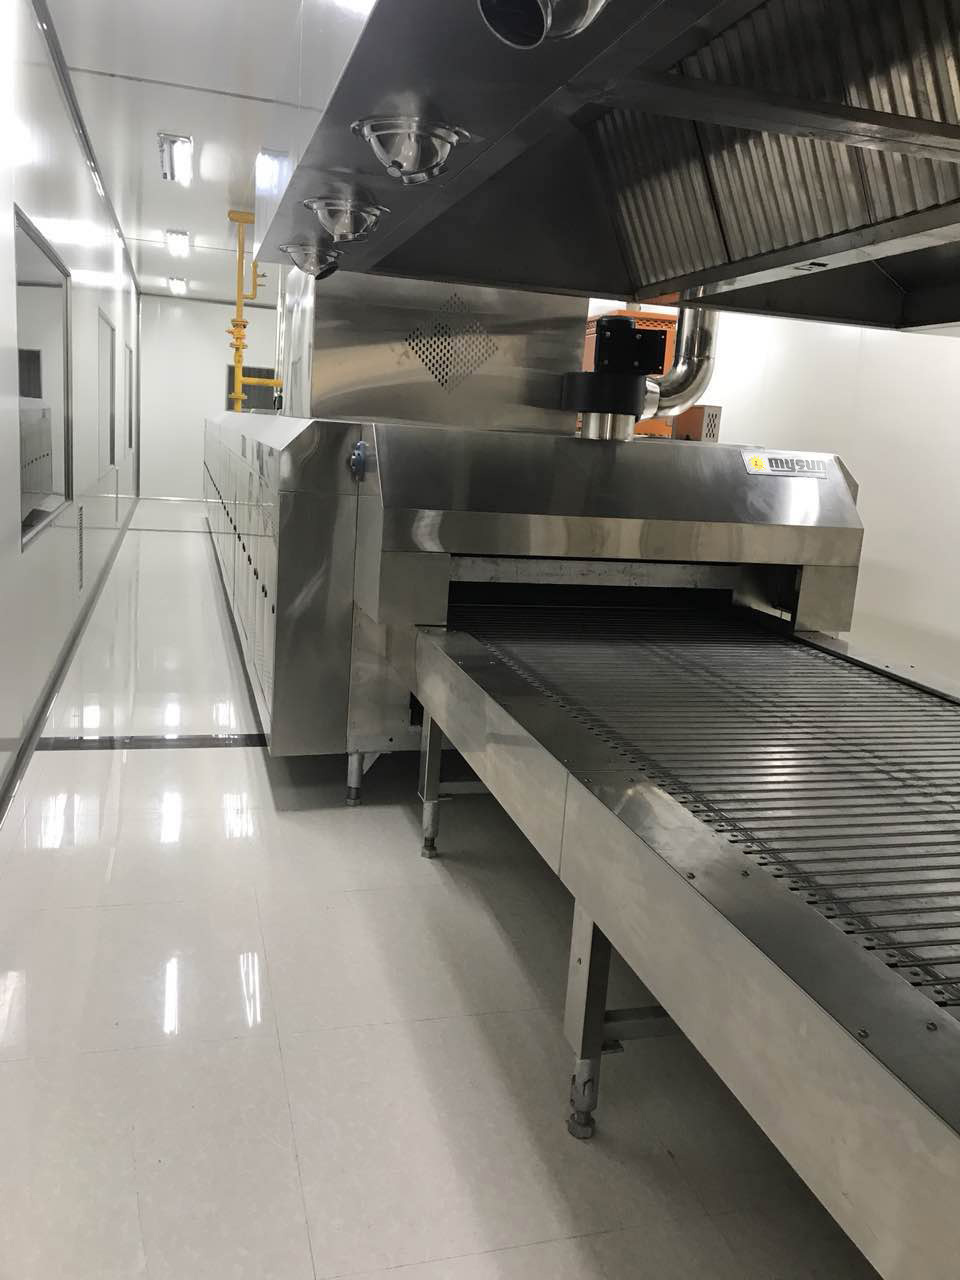 baking tunnel oven